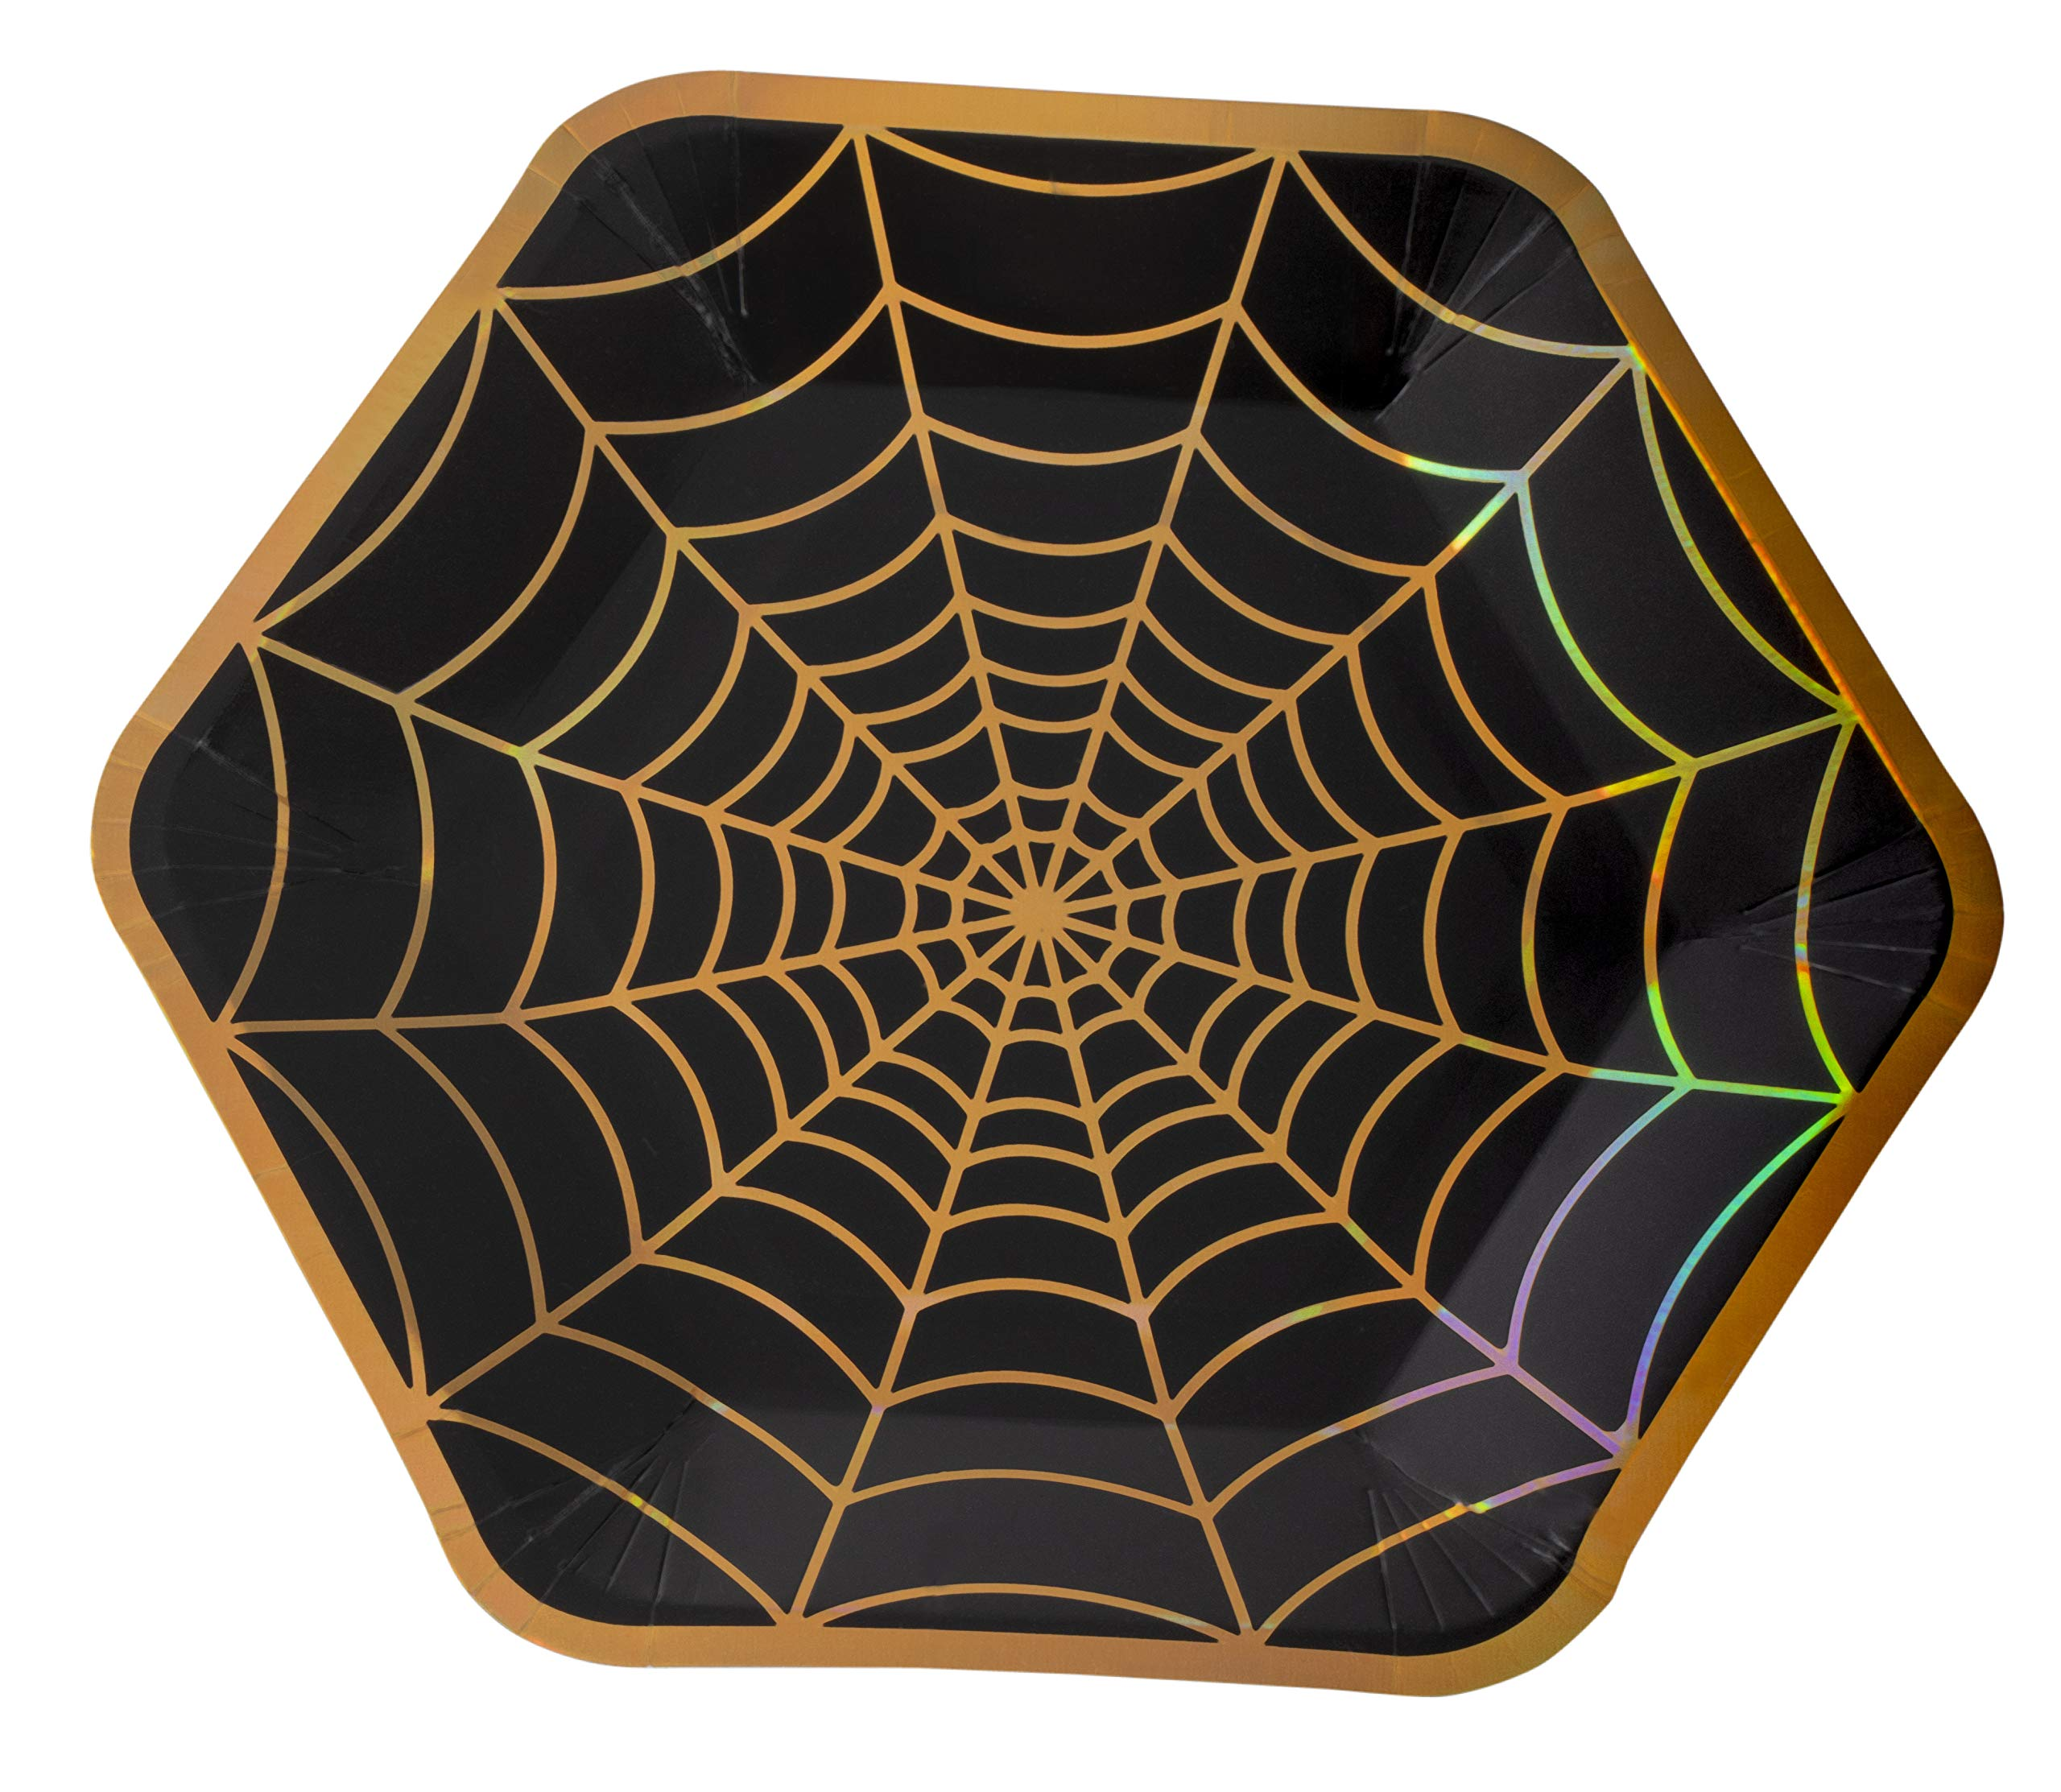 Disposable Plates - 50-Count Black Paper Plates, Hexagon Plates, Halloween Party Supplies for Appetizer, Lunch, Dinner, Dessert, with Holographic Spider-Web Design, 9 x 8 Inches by Blue Panda